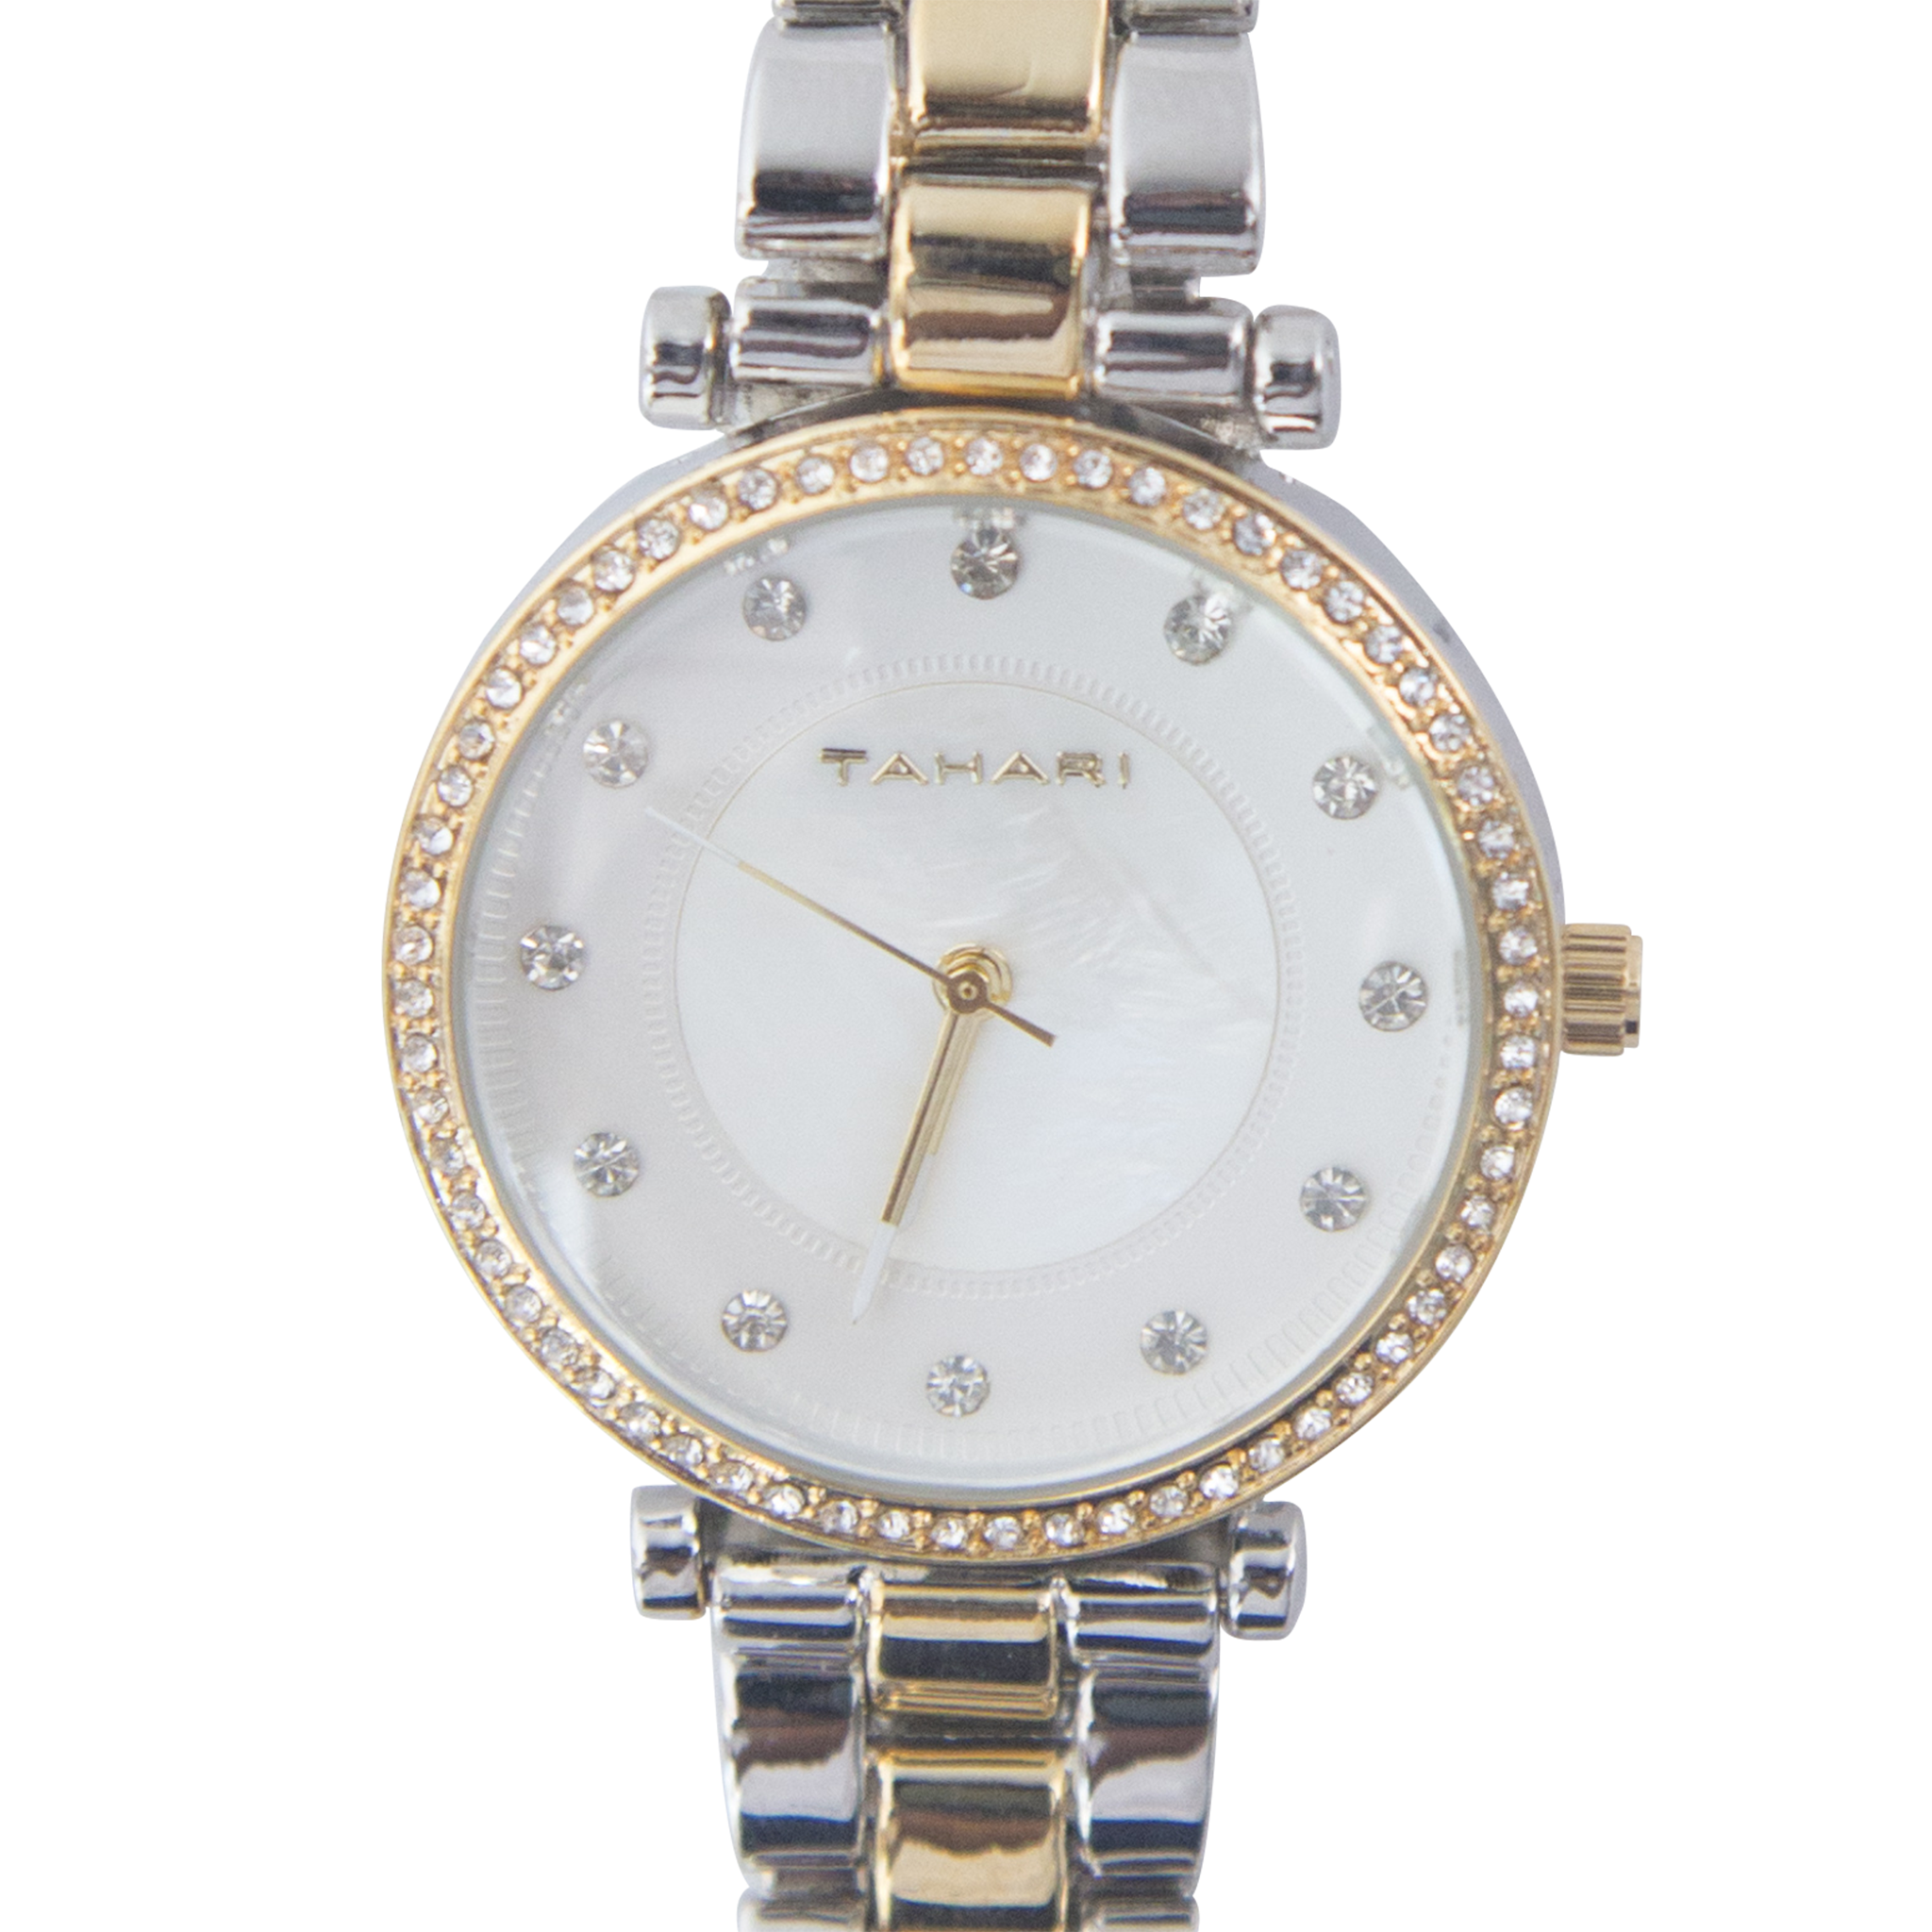 Tahari Two Tone Silver and Gold Watch with Crystal Accents - TAH5134